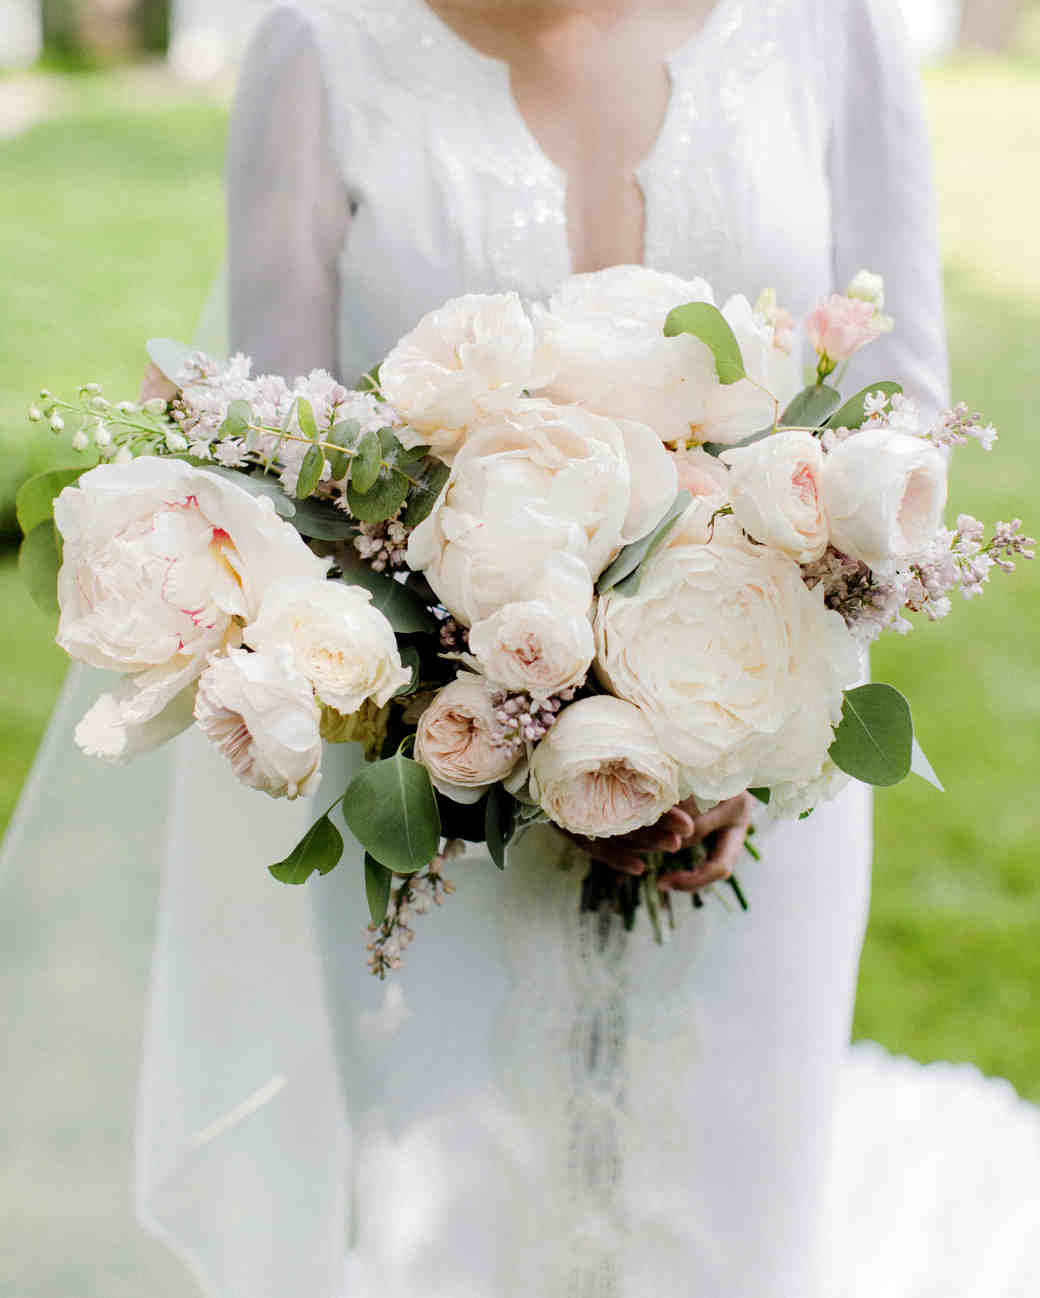 eden jack wedding bouquet